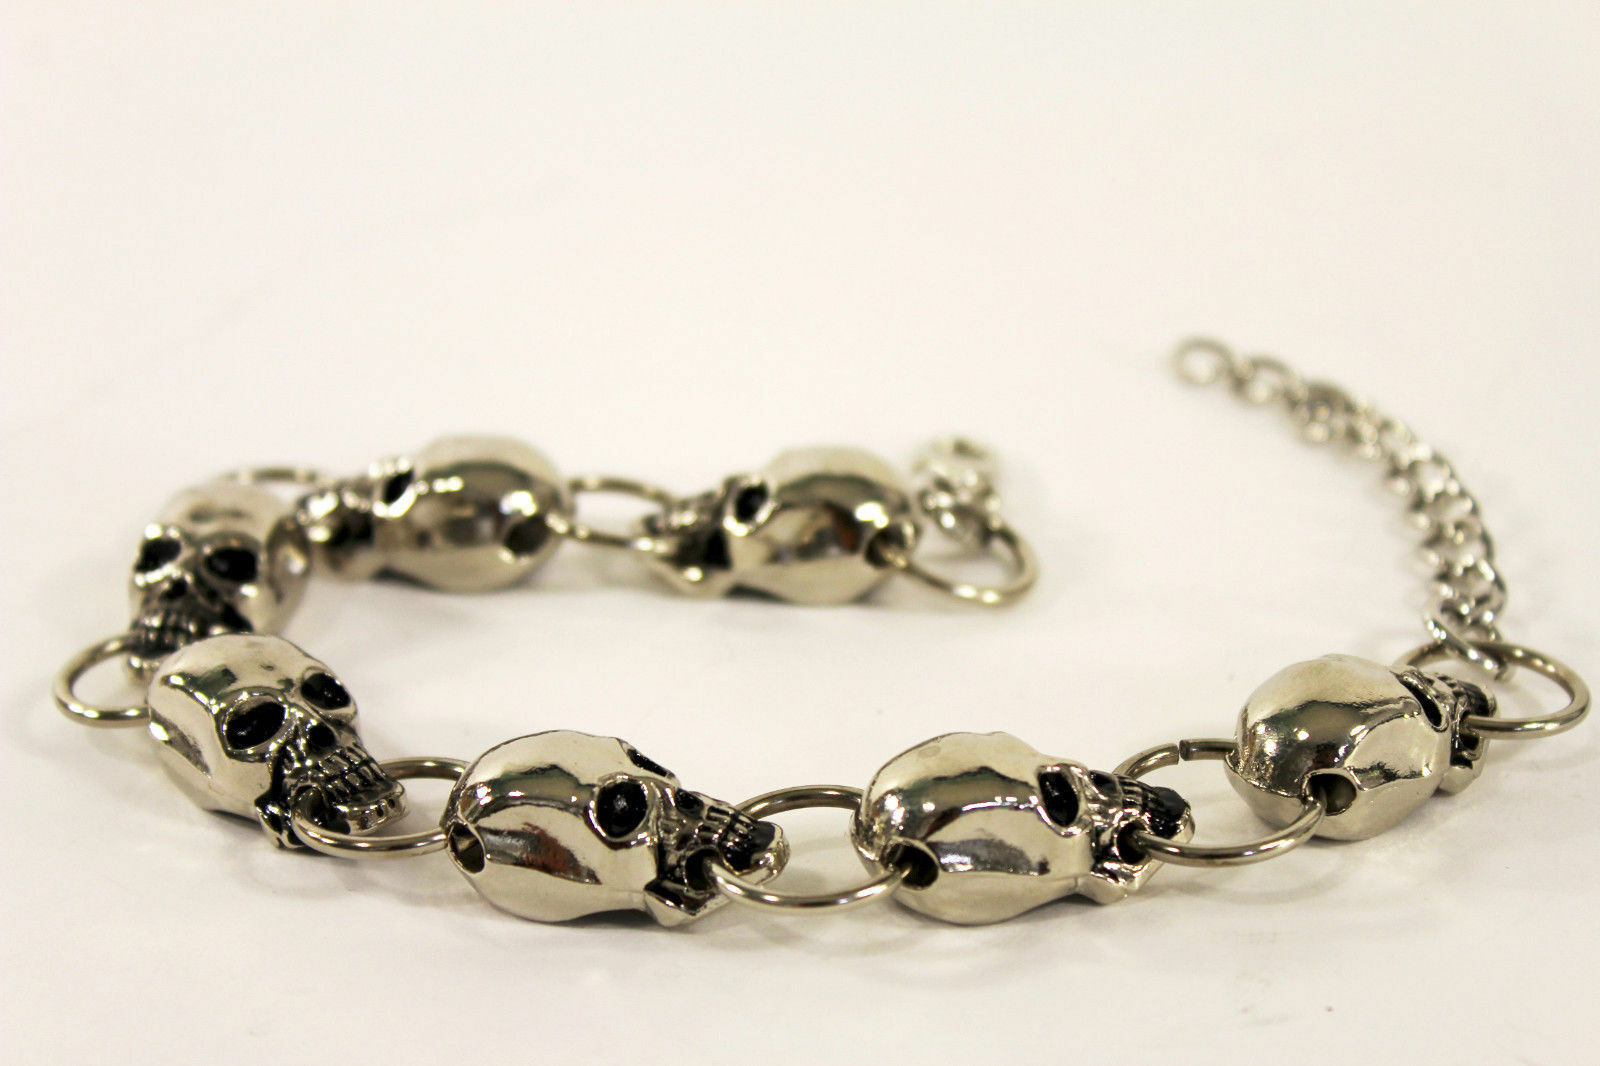 Women Gothic Jewelry Boot Anklet Bracelet Silver Metal Chain Skull Shoe Charms